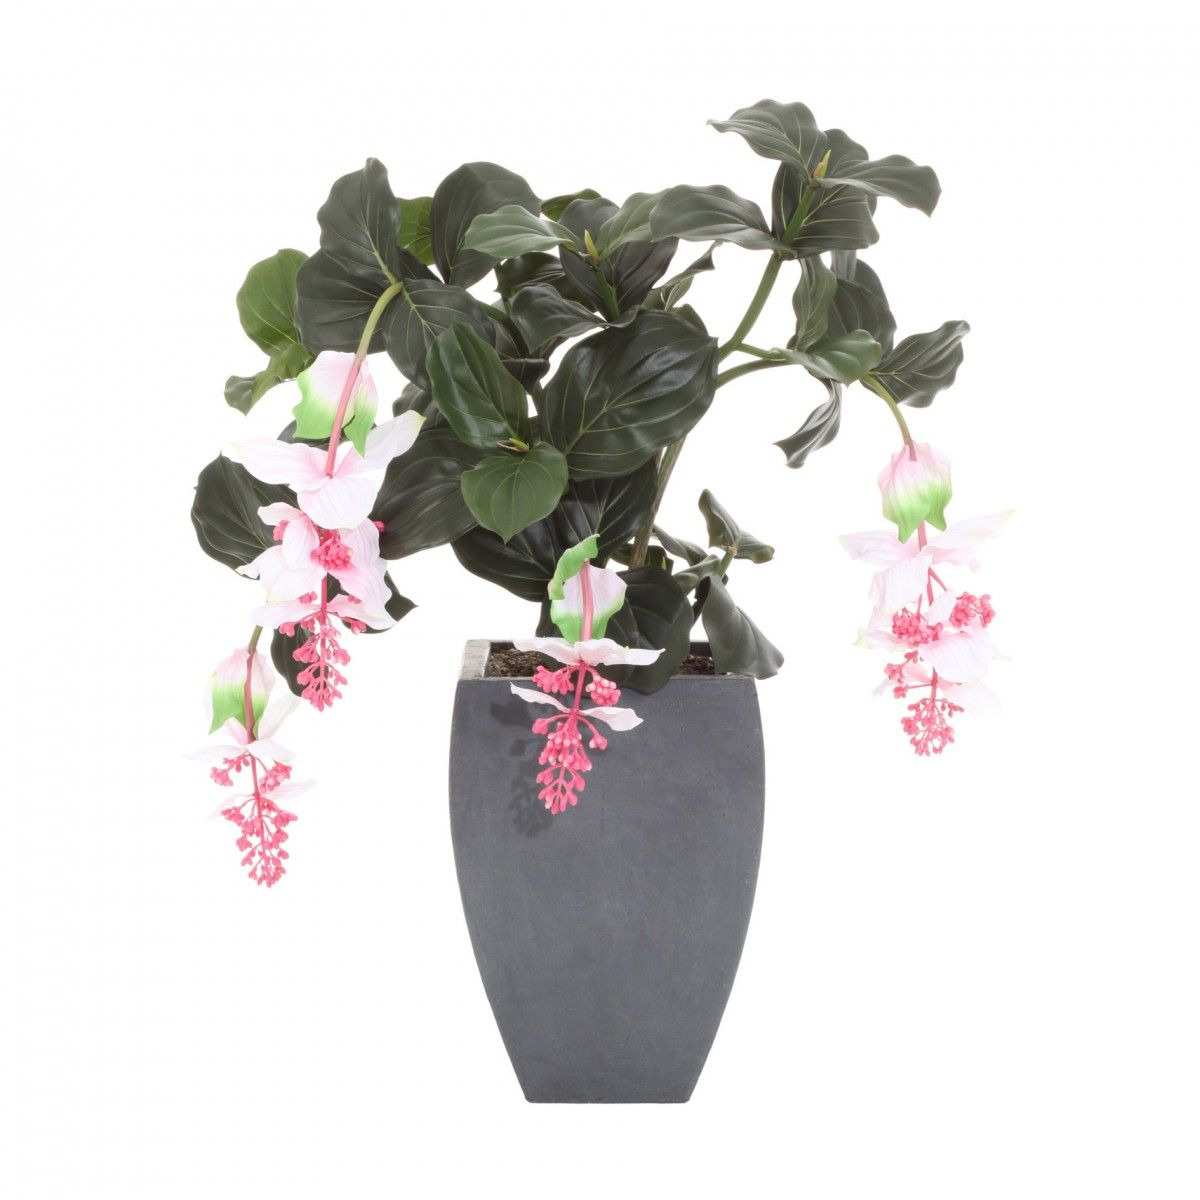 medinilla magnifica 90cm mit topf kaufen bei. Black Bedroom Furniture Sets. Home Design Ideas